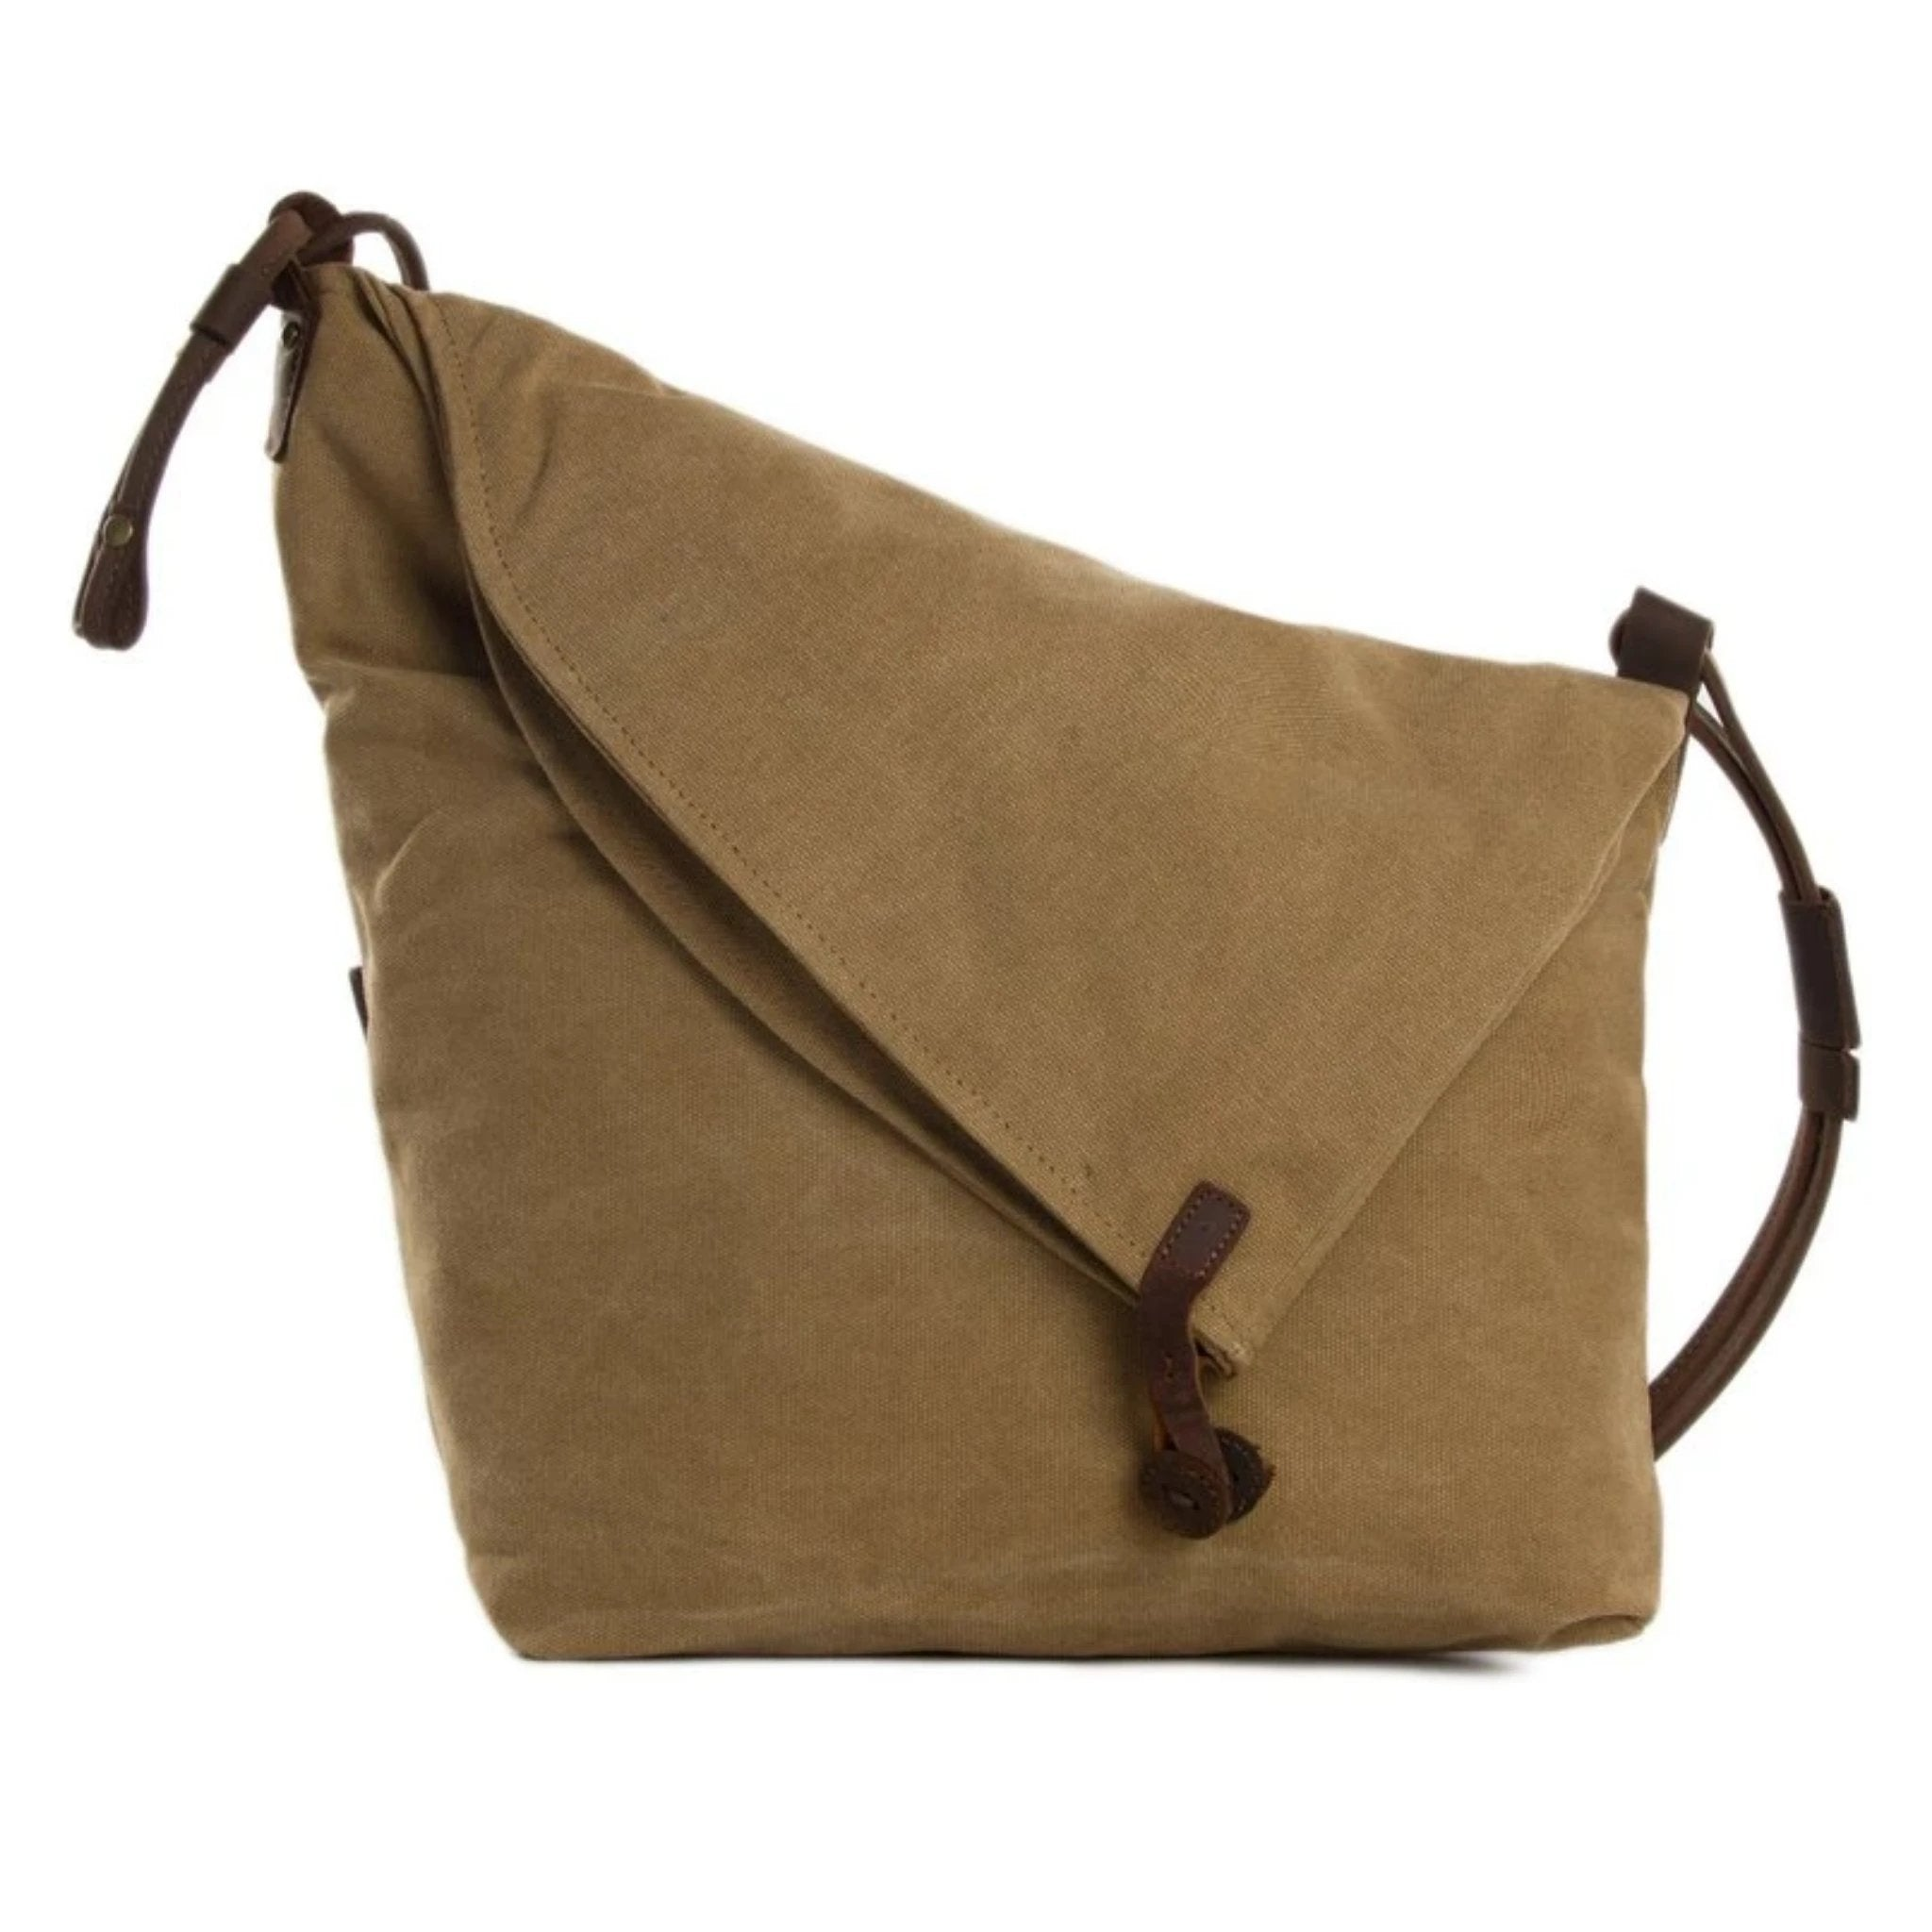 Waxed Canvas with Leather Strap Sling Bag - Khaki - Blue Sebe Handmade Leather Bags